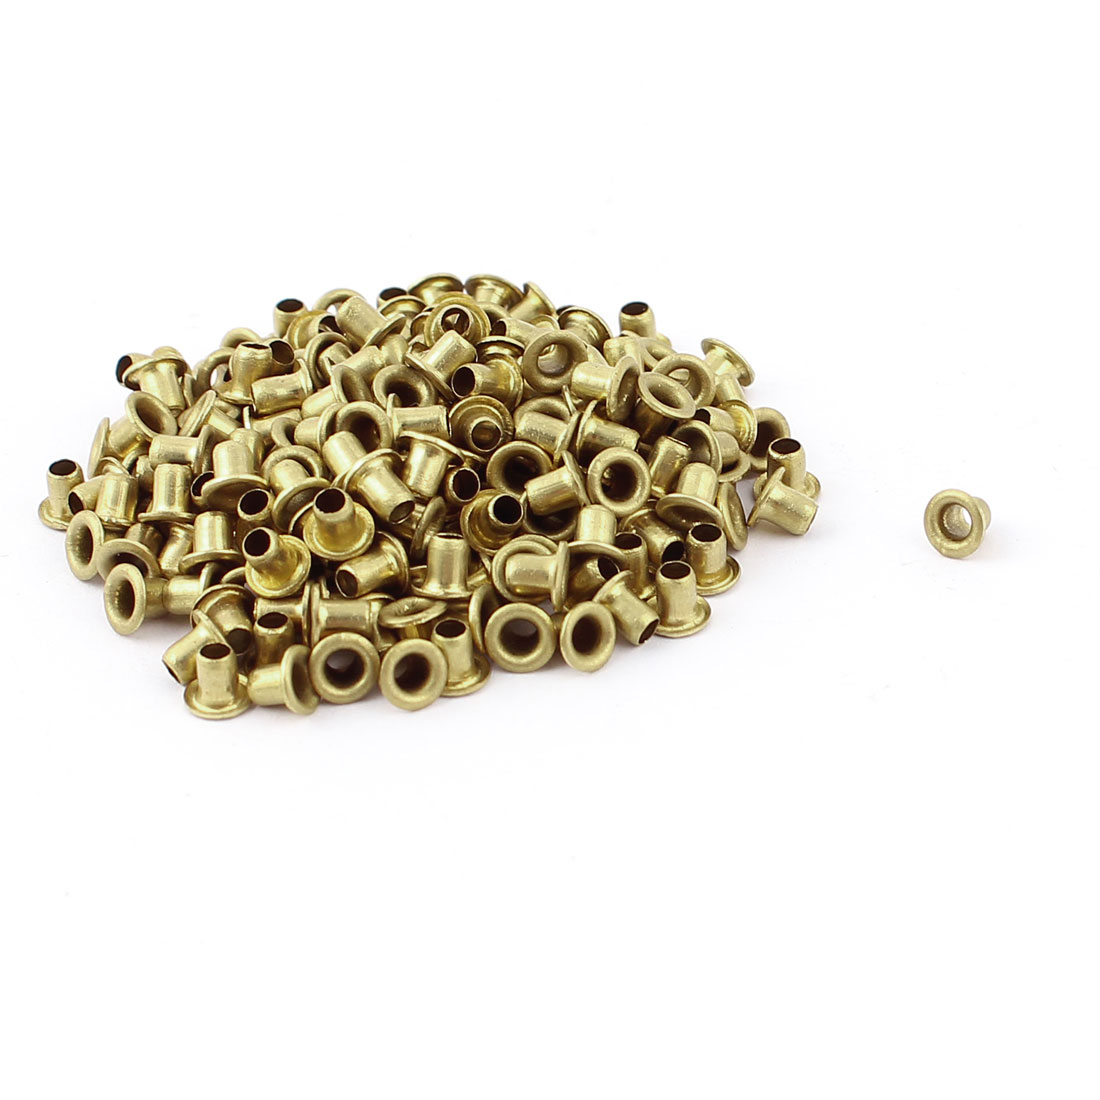 200pcs M2.5x3 Copper Via Vias Plated Through Hole Rivets Hollow Grommets PCB Circuit Board